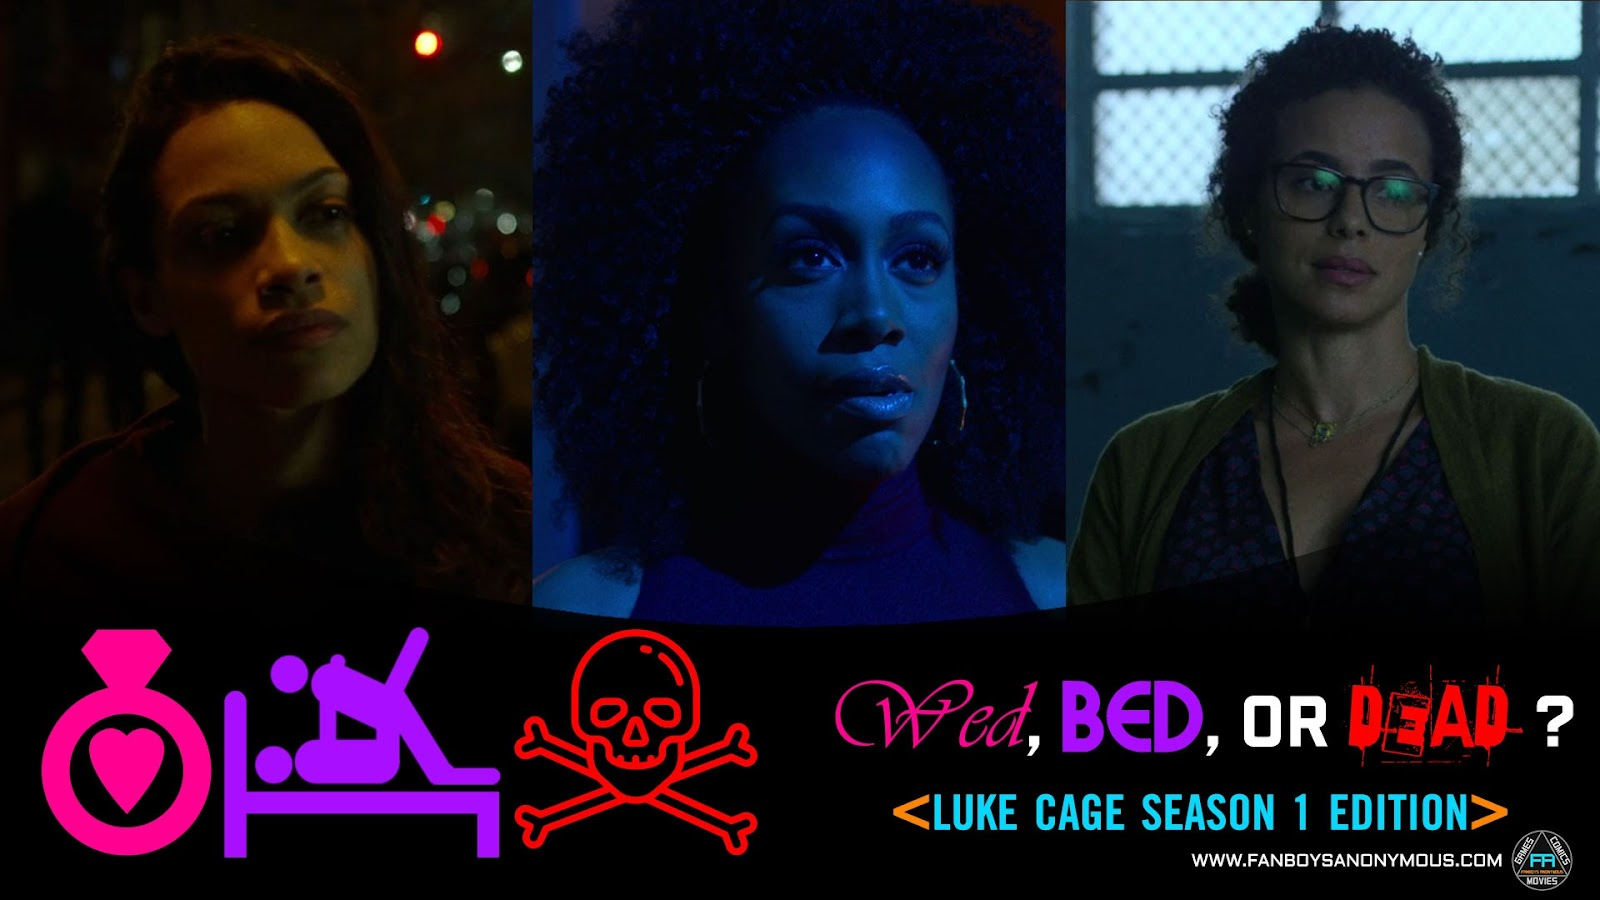 Marry Fuck Kill Luke Cage Netflix Season 1 who would you bang kill marry